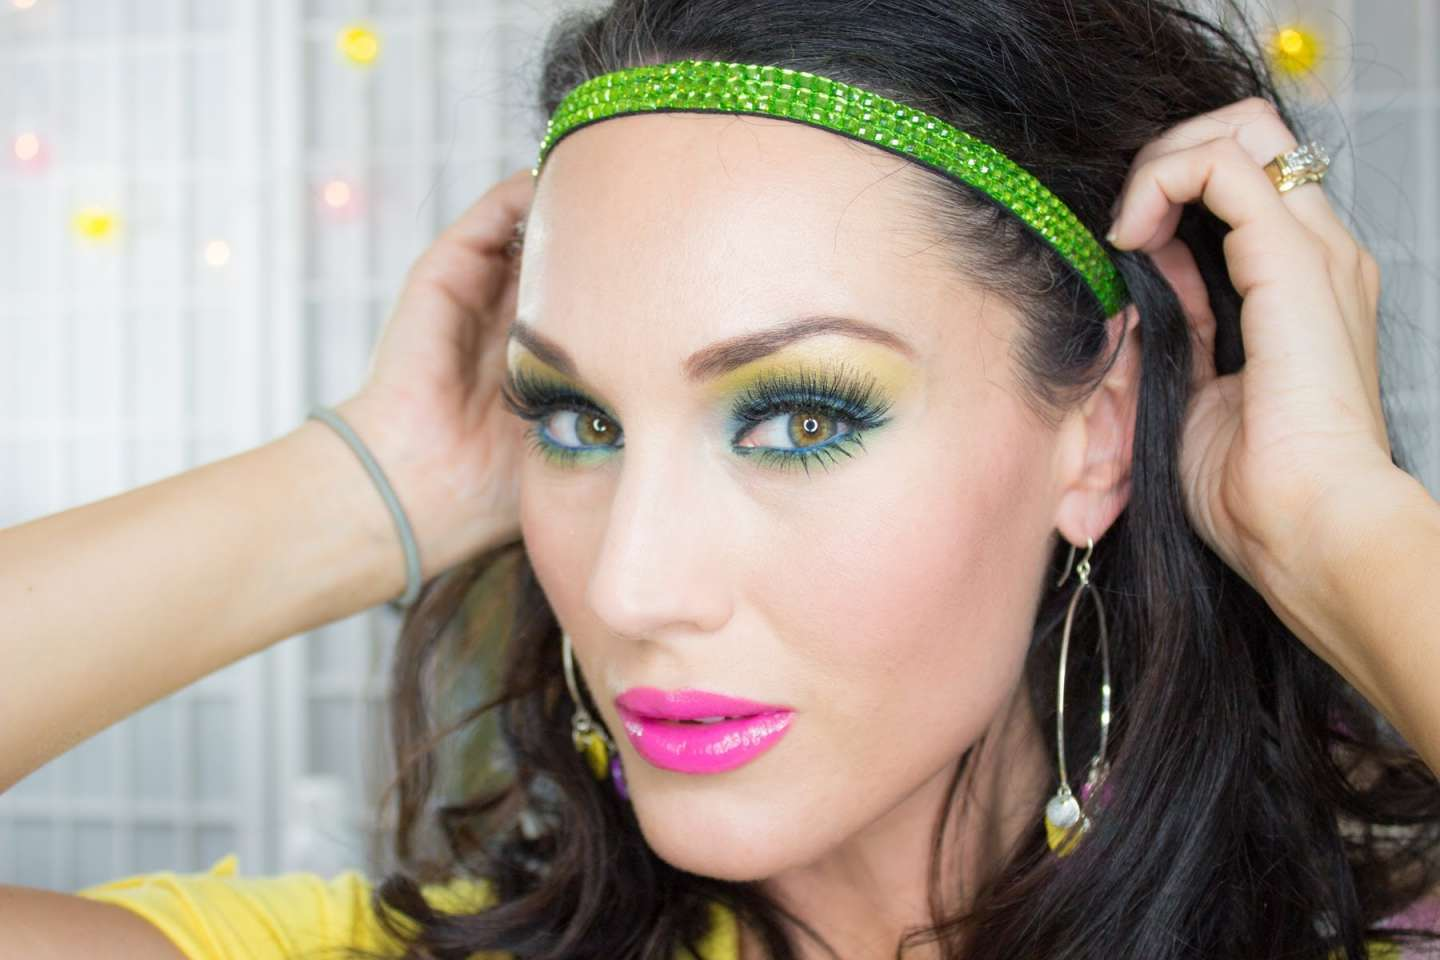 Makeup giallo e verde